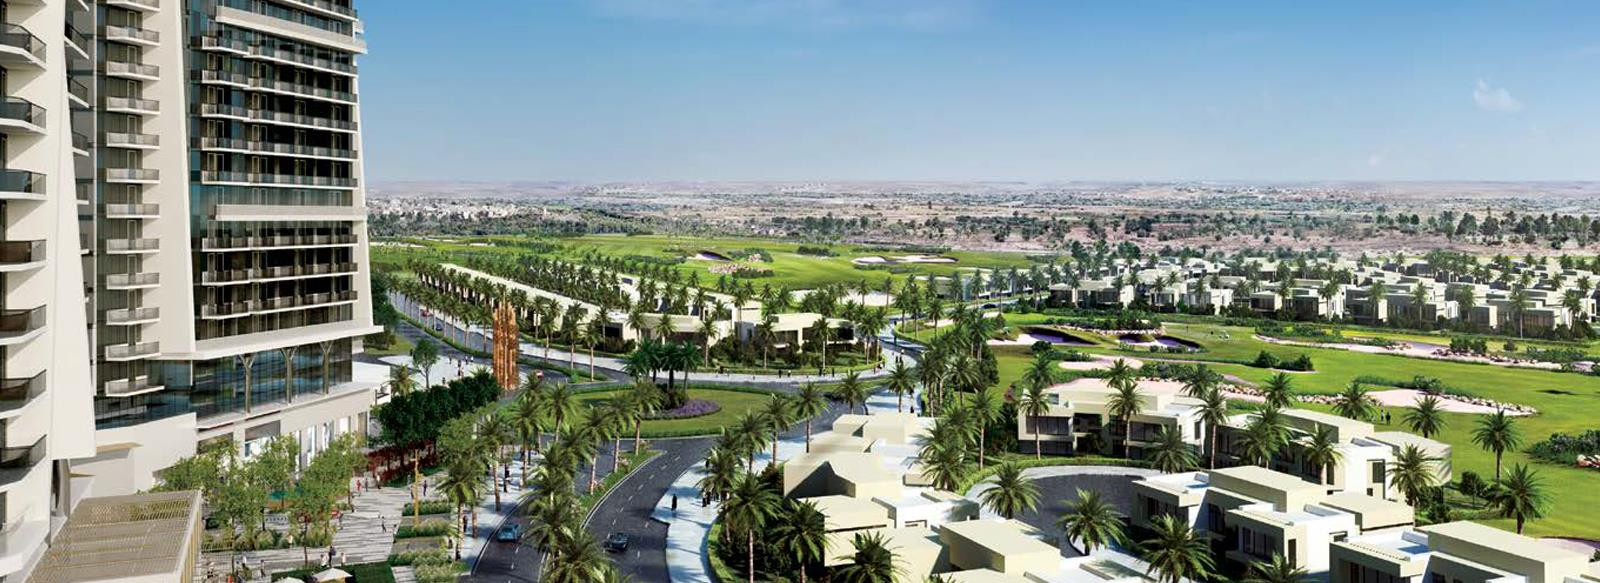 <div>Studio, 1, 2 &amp; 3 Bedroom Serviced Apartments,</div><div>Starting From AED 643,000</div>